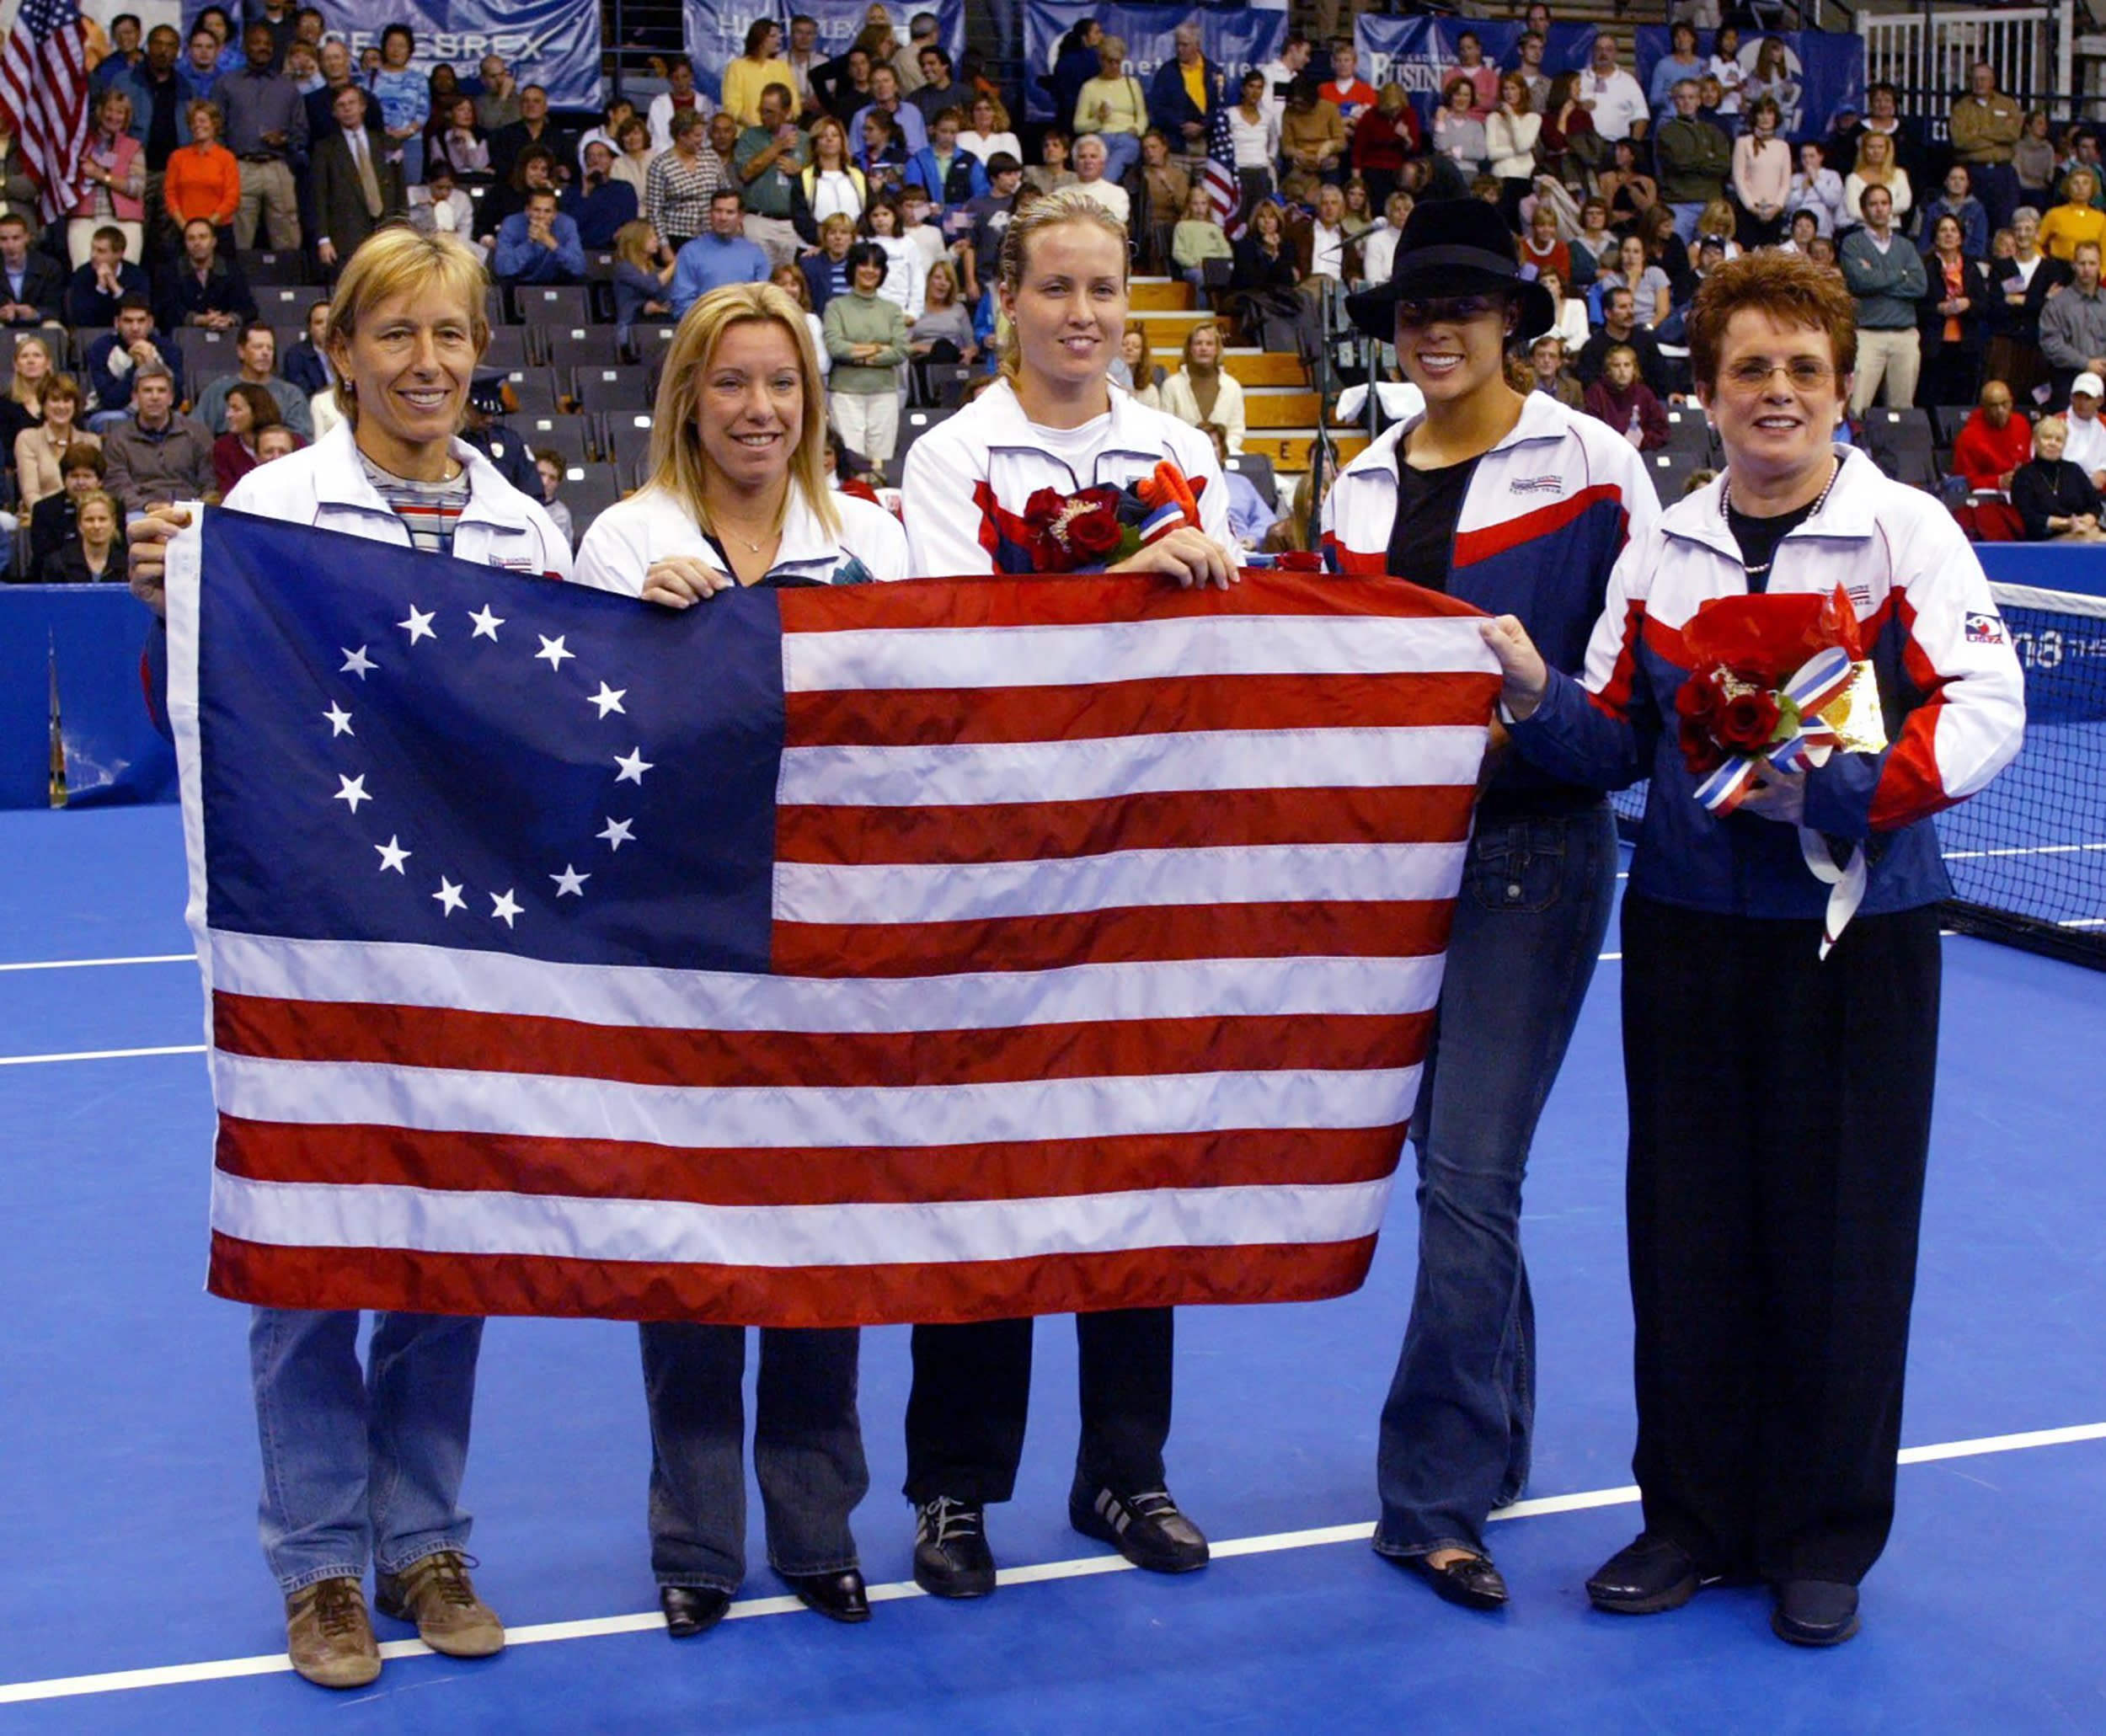 FILE - In this file photo dated Thursday, Oct. 30, 2003, U.S. Fed Cup members from left, Martina Navrartilova, Lisa Raymond, Meghann Shaughnessy, Alexandra Stevenson and Fed Cup Captain Billie Jean King, accept a replica of the Betsy Ross Flag at the Advanta Championships, in VIllanova, USA. The Fed Cup is changing its name to honour tennis great Billie Jean King, becoming The Billie Jean King Cup, the first major global team competition to be named after a woman, it is announced Thursday Sept. 17, 2020.(AP Photo/Miles Kennedy, FILE)